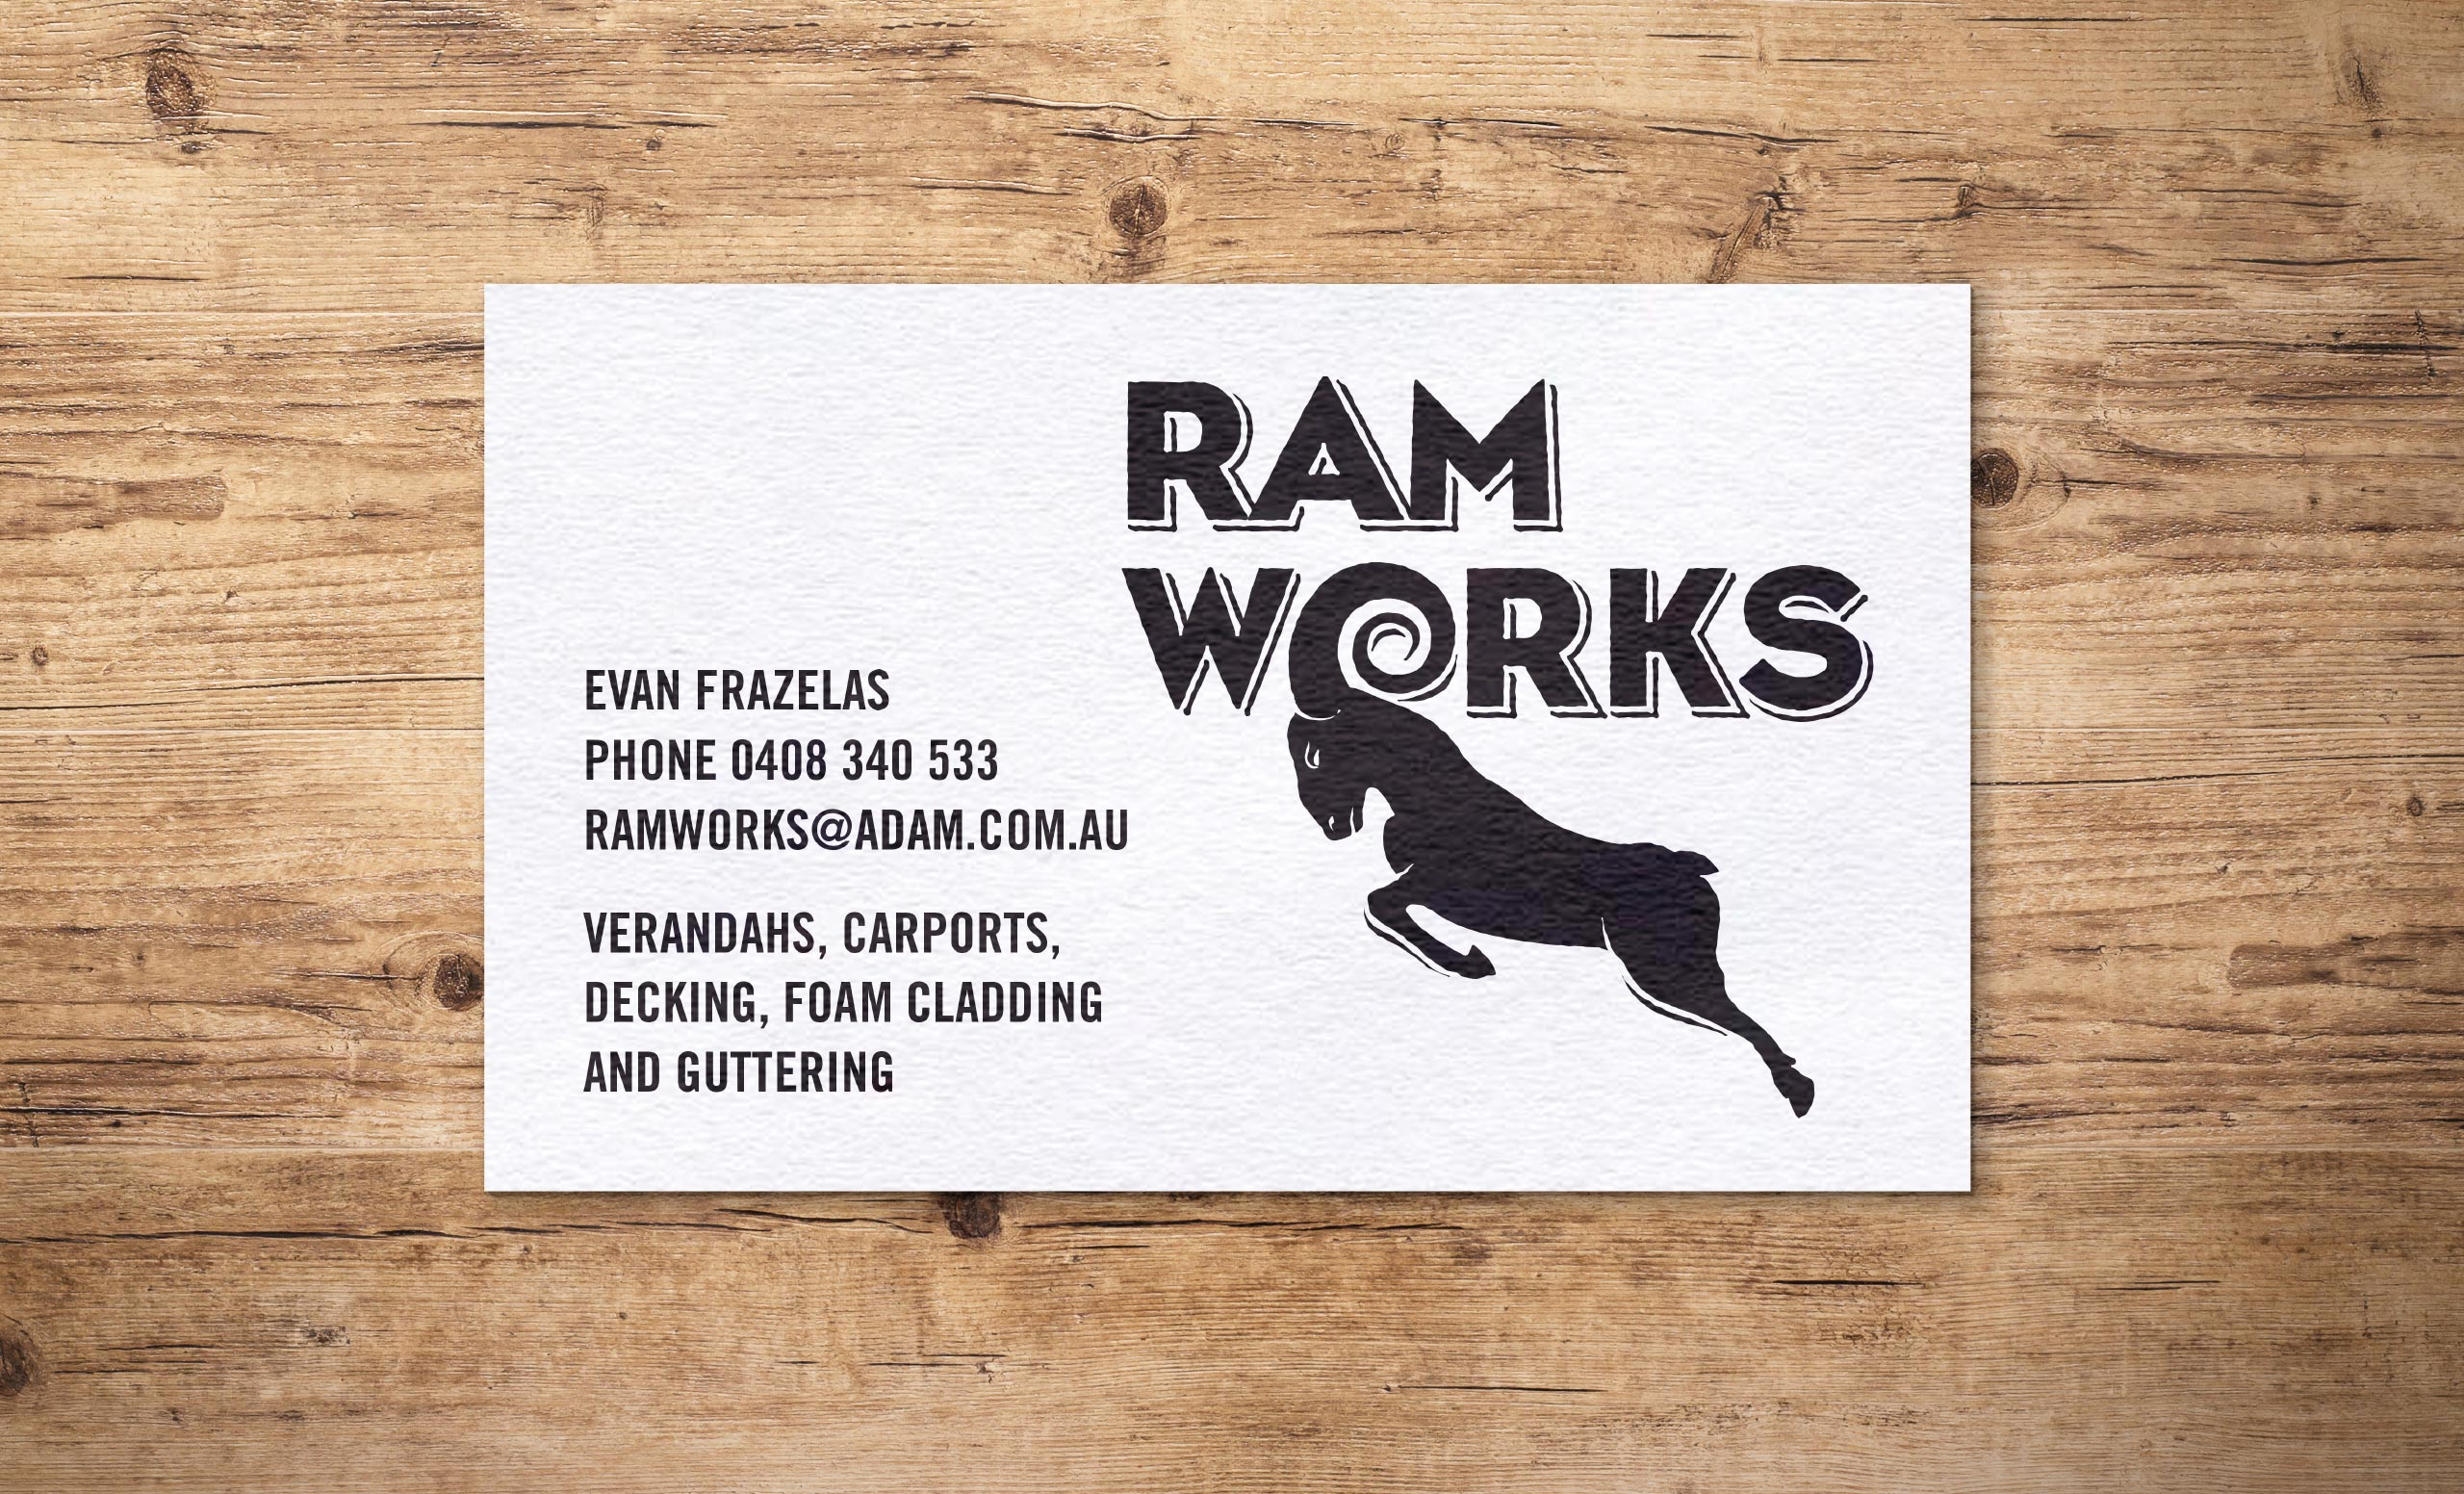 Ram Works business card